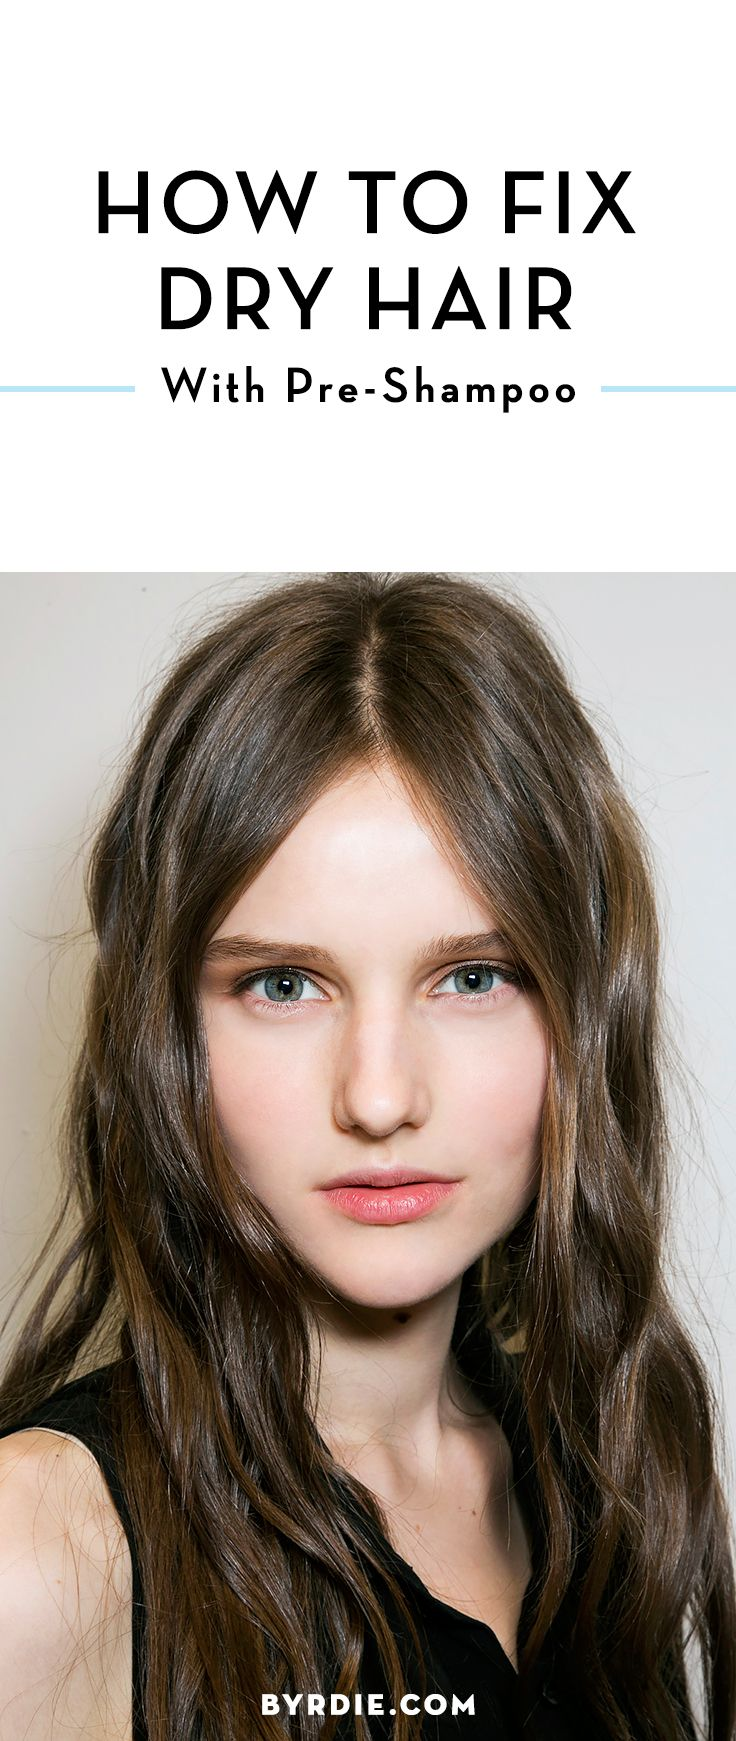 How pre-shampoo can fix your dry hair problem